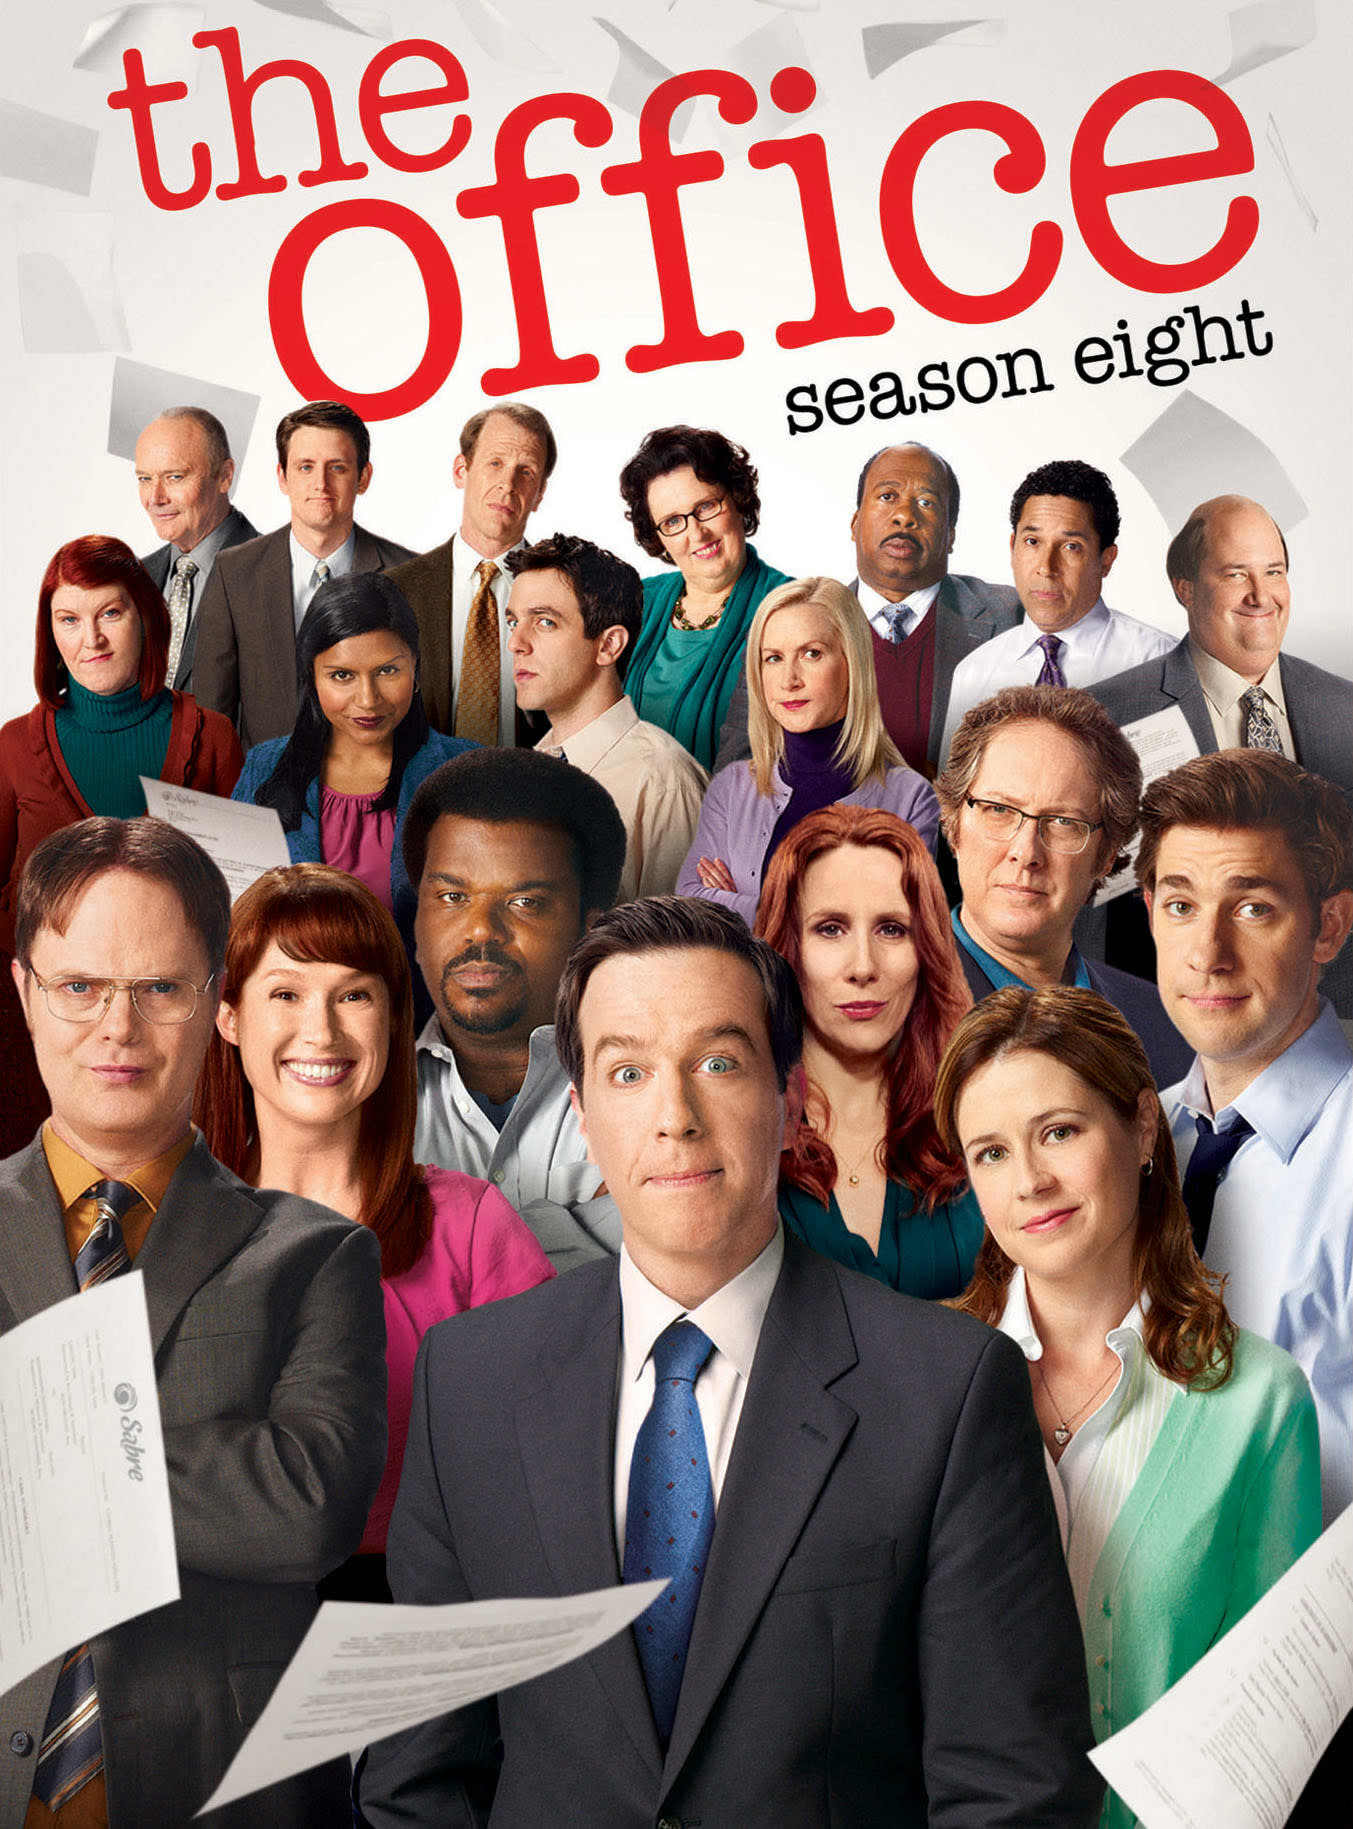 The Office - An American Workplace: Season 8 (2012) [DVD]